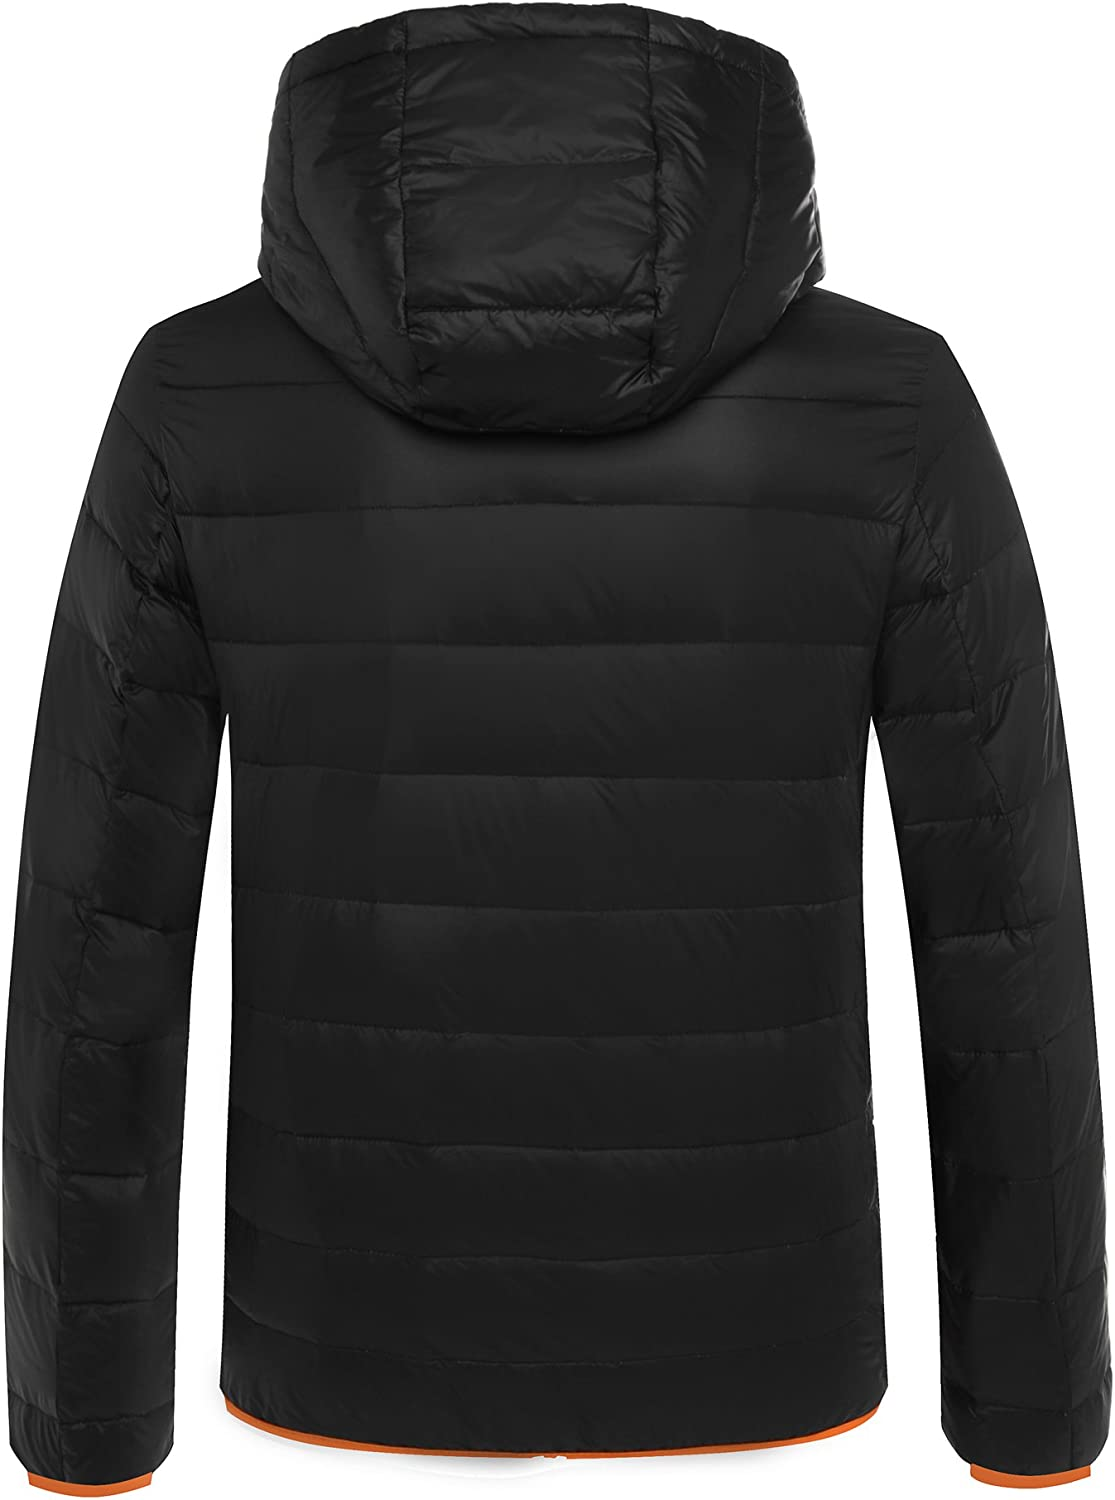 Cordless Mens Lightweight Packable Heated Jacket with 5000mAh Power Bank Battery for Winter Outdoor Wear